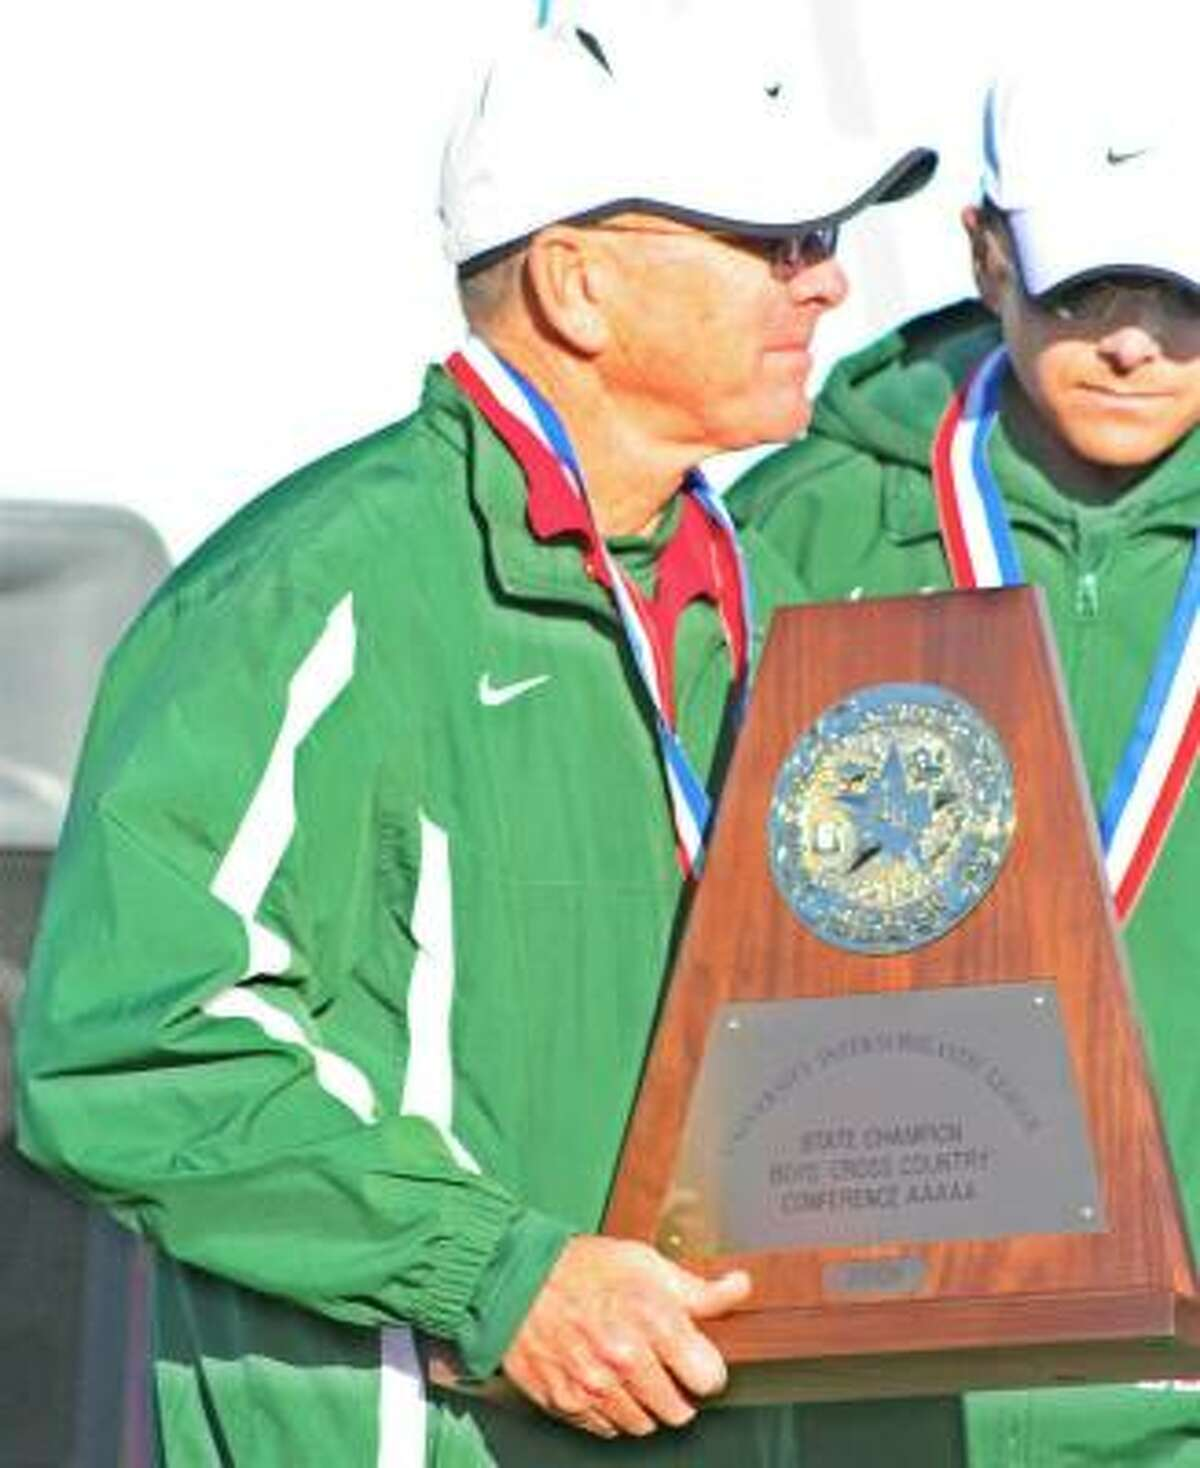 The Woodlands: Cross Country The Woodlands, under coach Dan Green, swept the boys and girls Class 5A team championships. The title was the third straight for the boys' program and first for the girls since 1989.